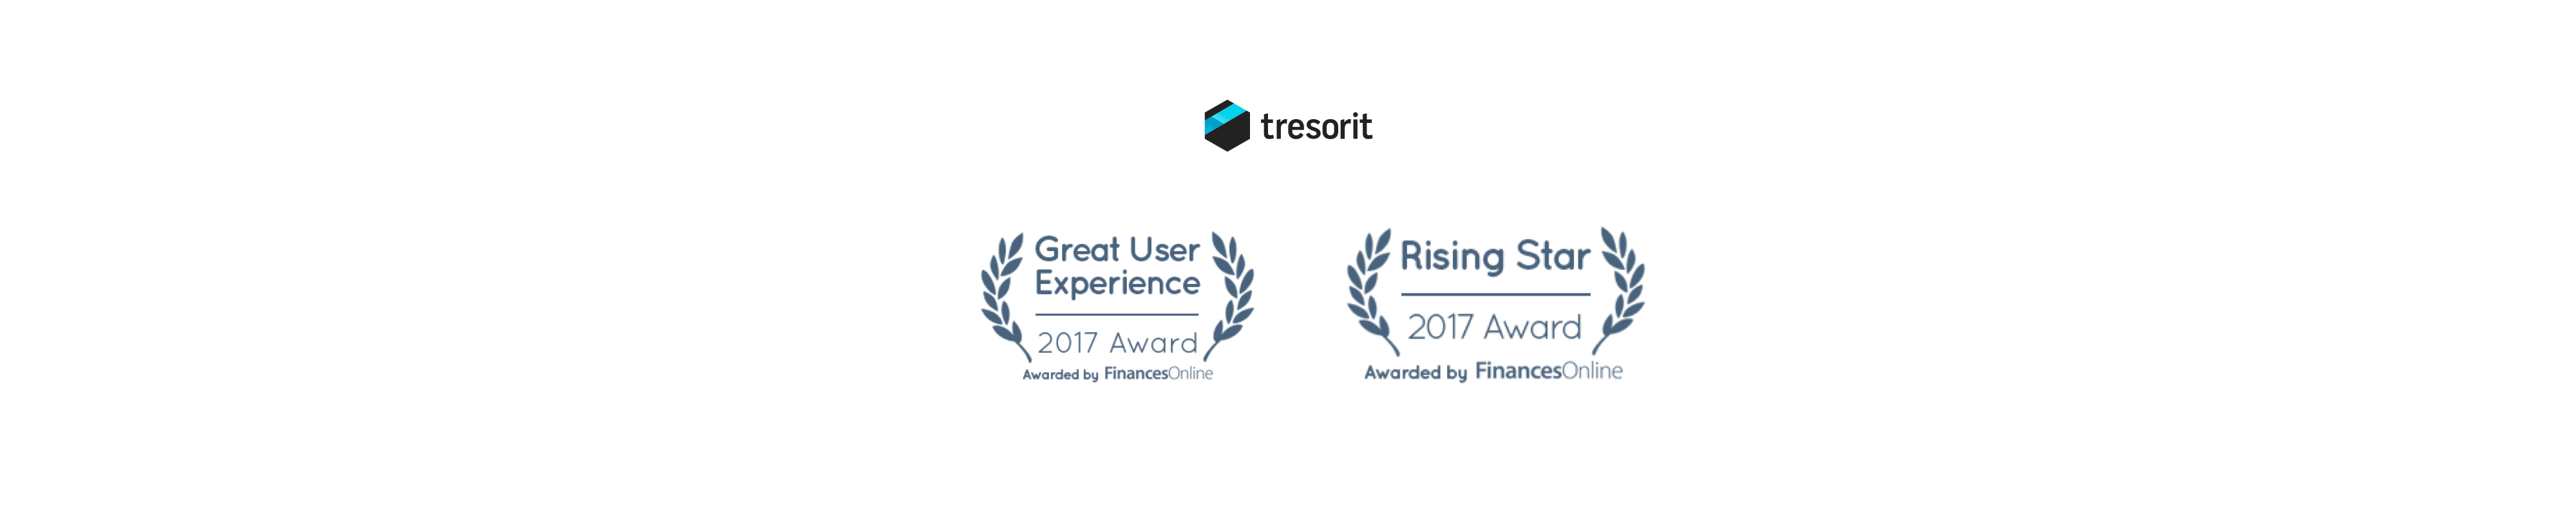 Tresorit receives Great User Experience and Rising Star awards from FinancesOnline